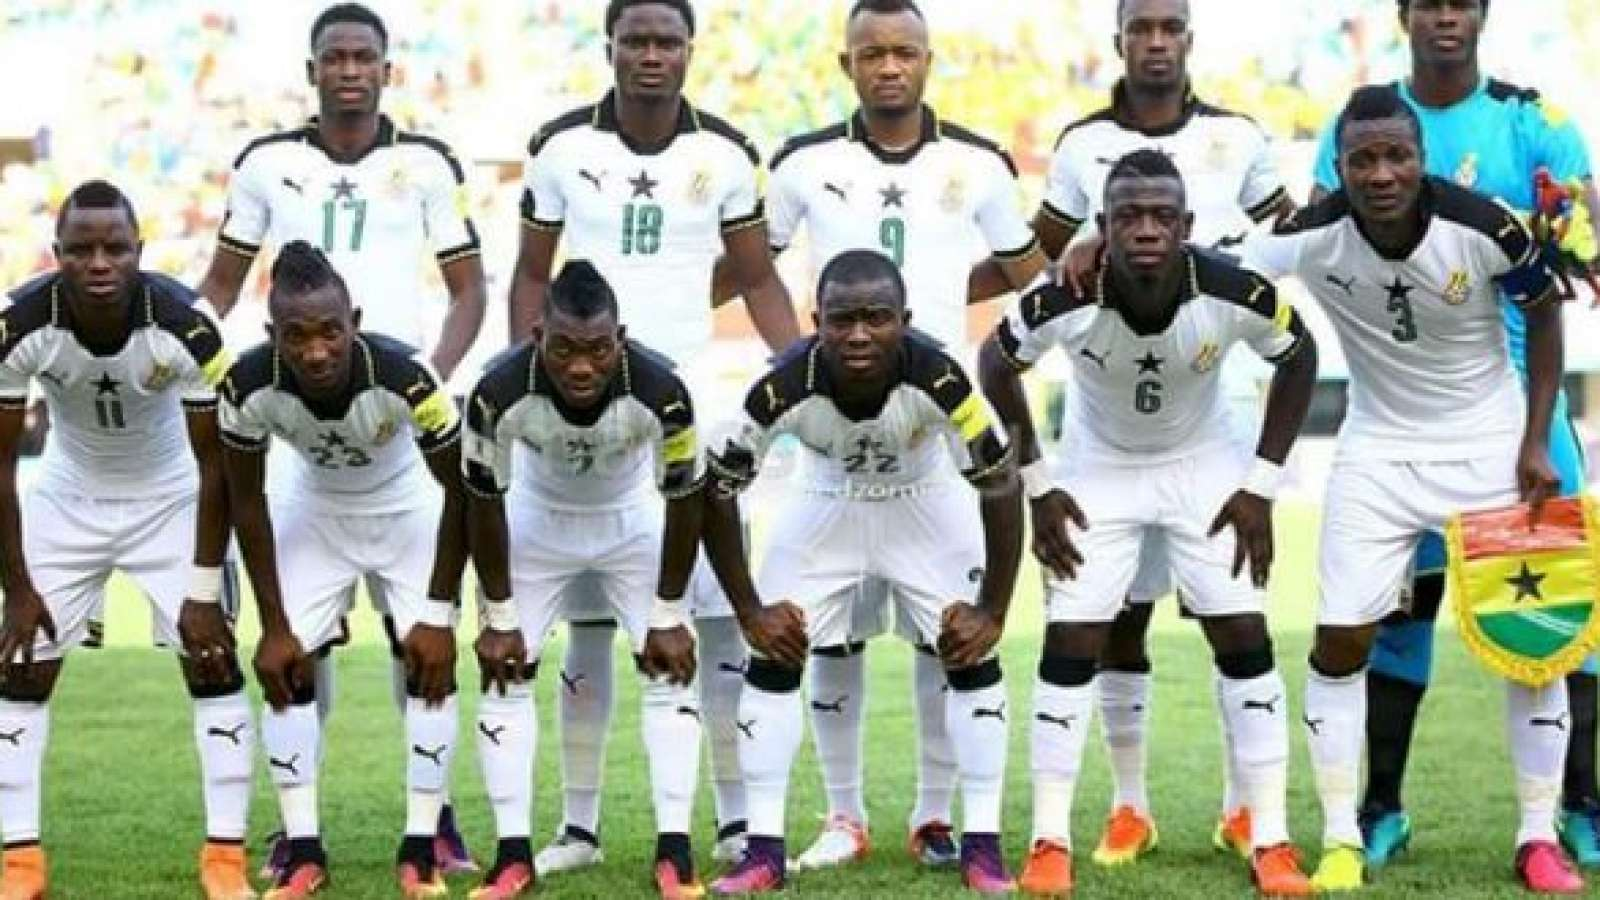 EXCLUSIVE: Ghana names strong starting line-up against Japan